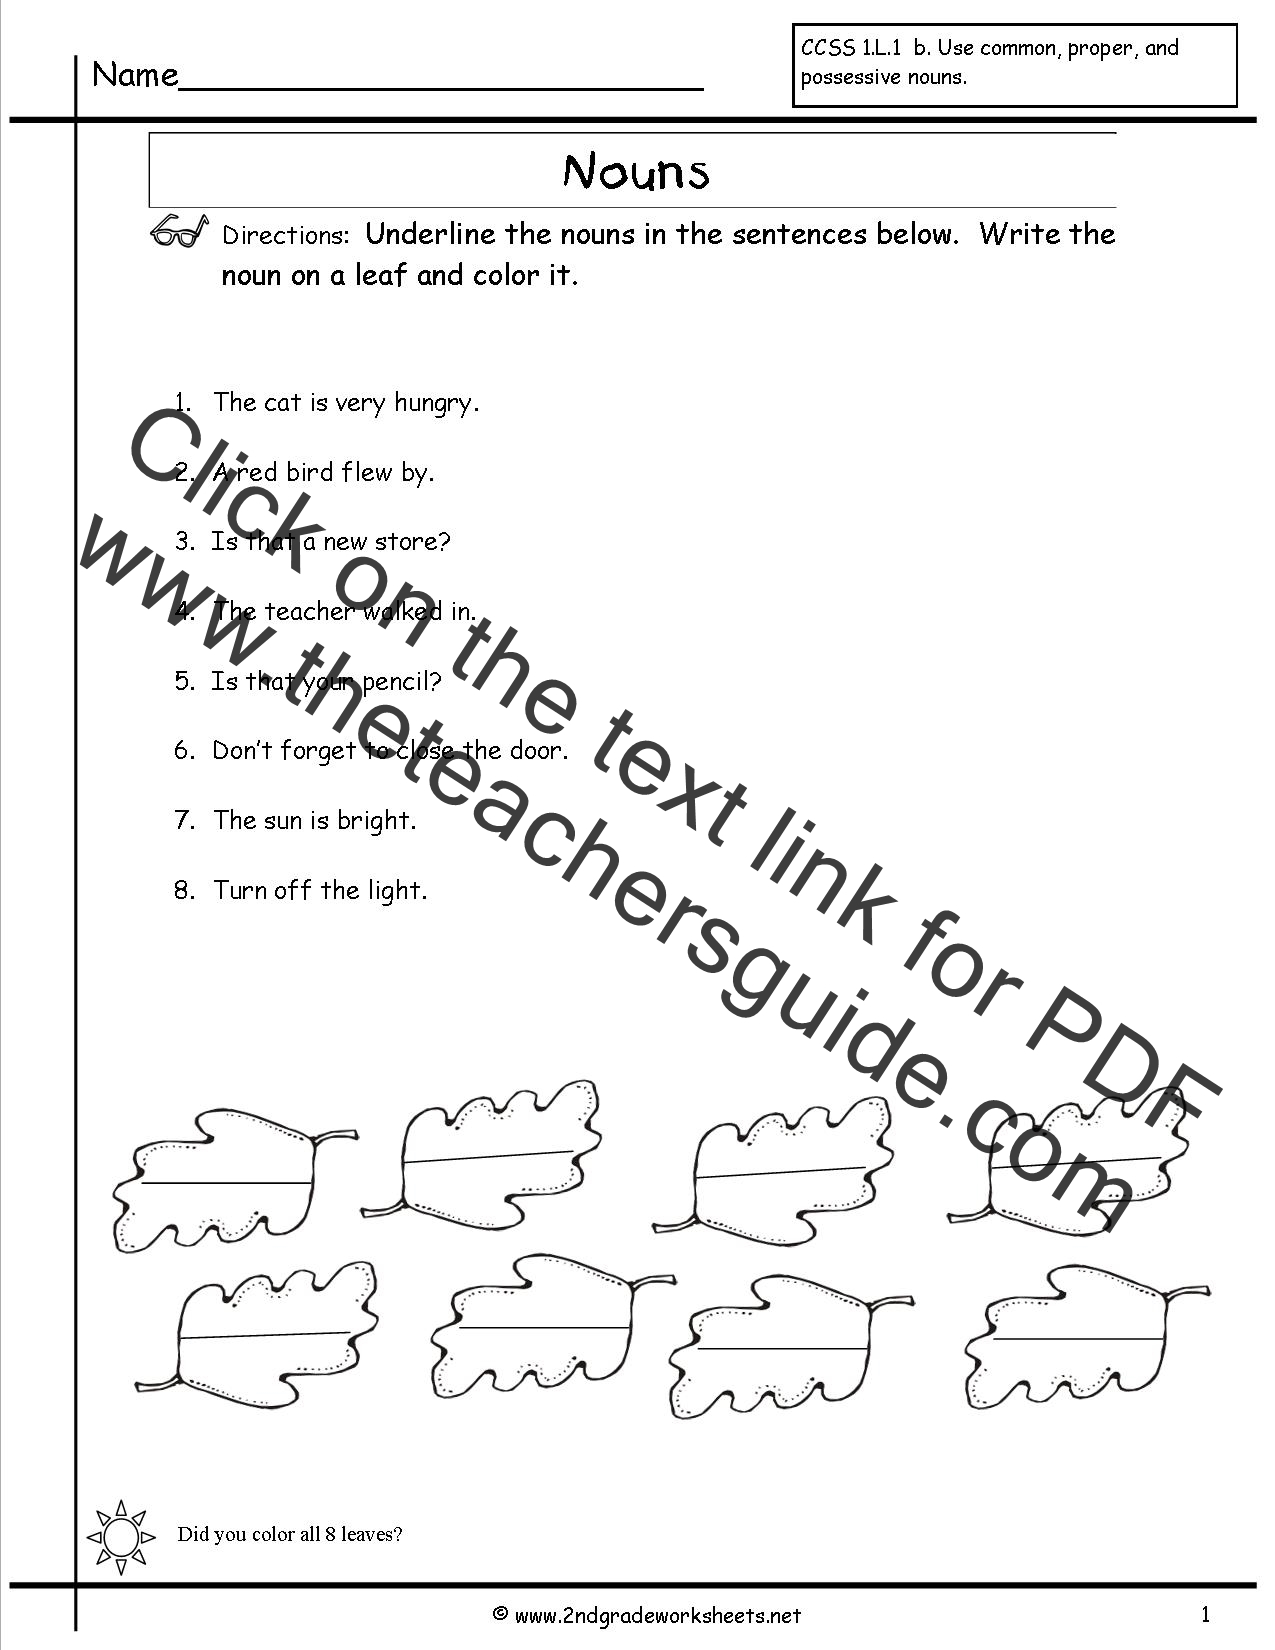 Printables Worksheets For Nouns nouns worksheets and printouts worksheet